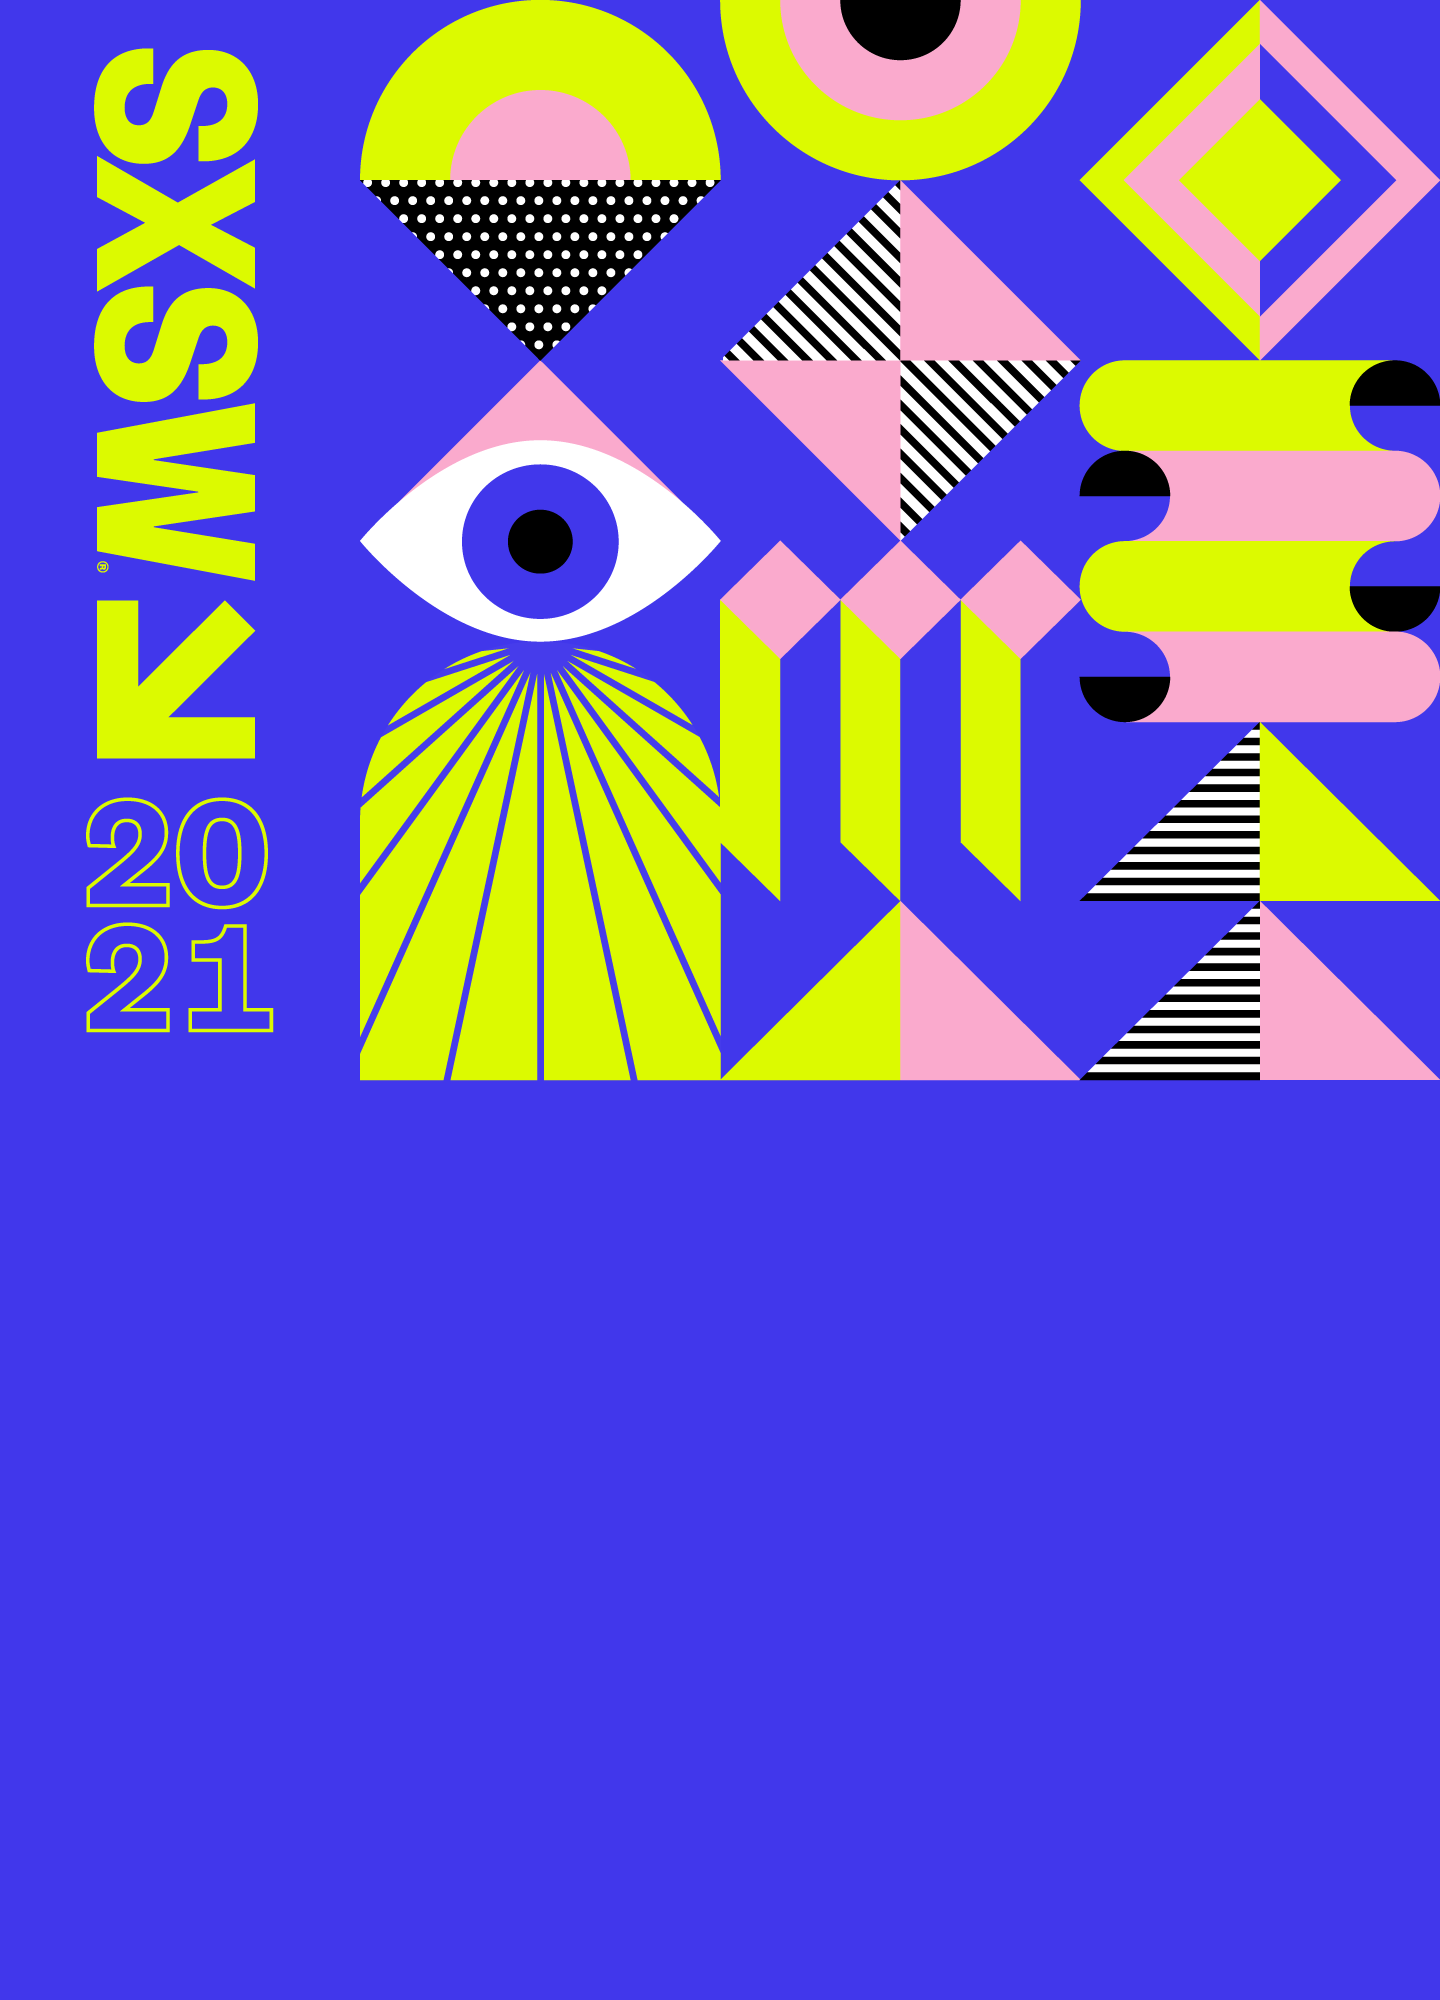 Pin By Ridwan On Experimental Art And Technology Festivals Sxsw Film Festival Sxsw